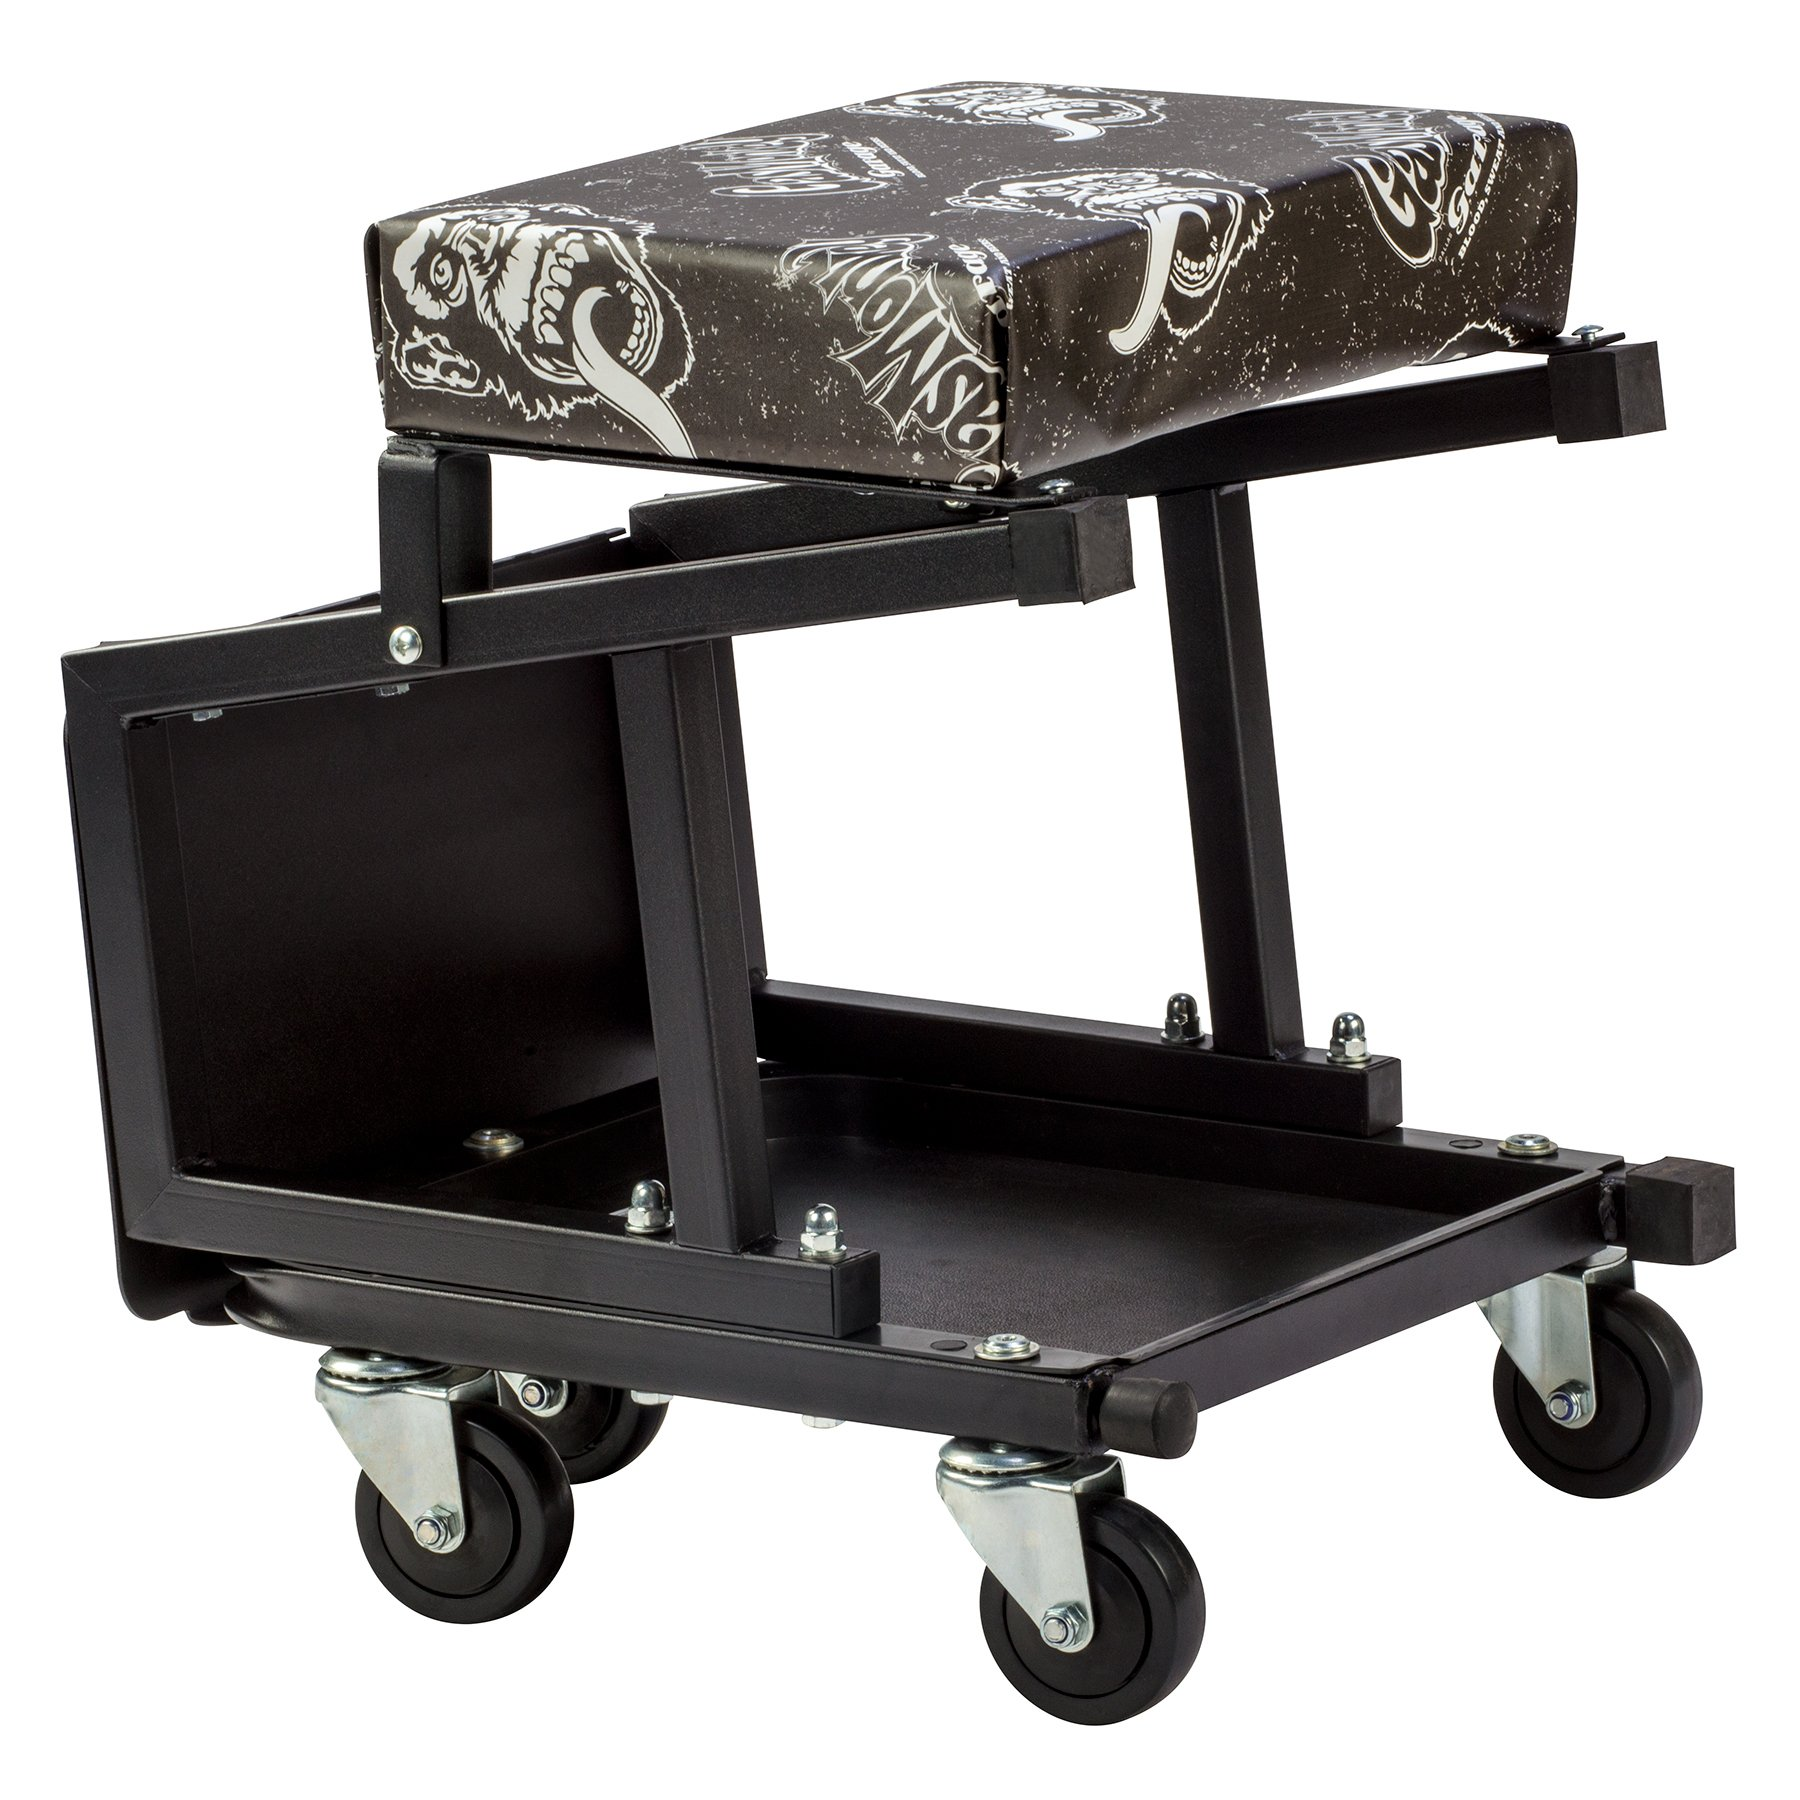 Gas Monkey Mechanic Creeper Seat and Stool Combo - 5 Rolling Casters with 350 Lbs Capacity for Auto Car Garage by Gas Monkey